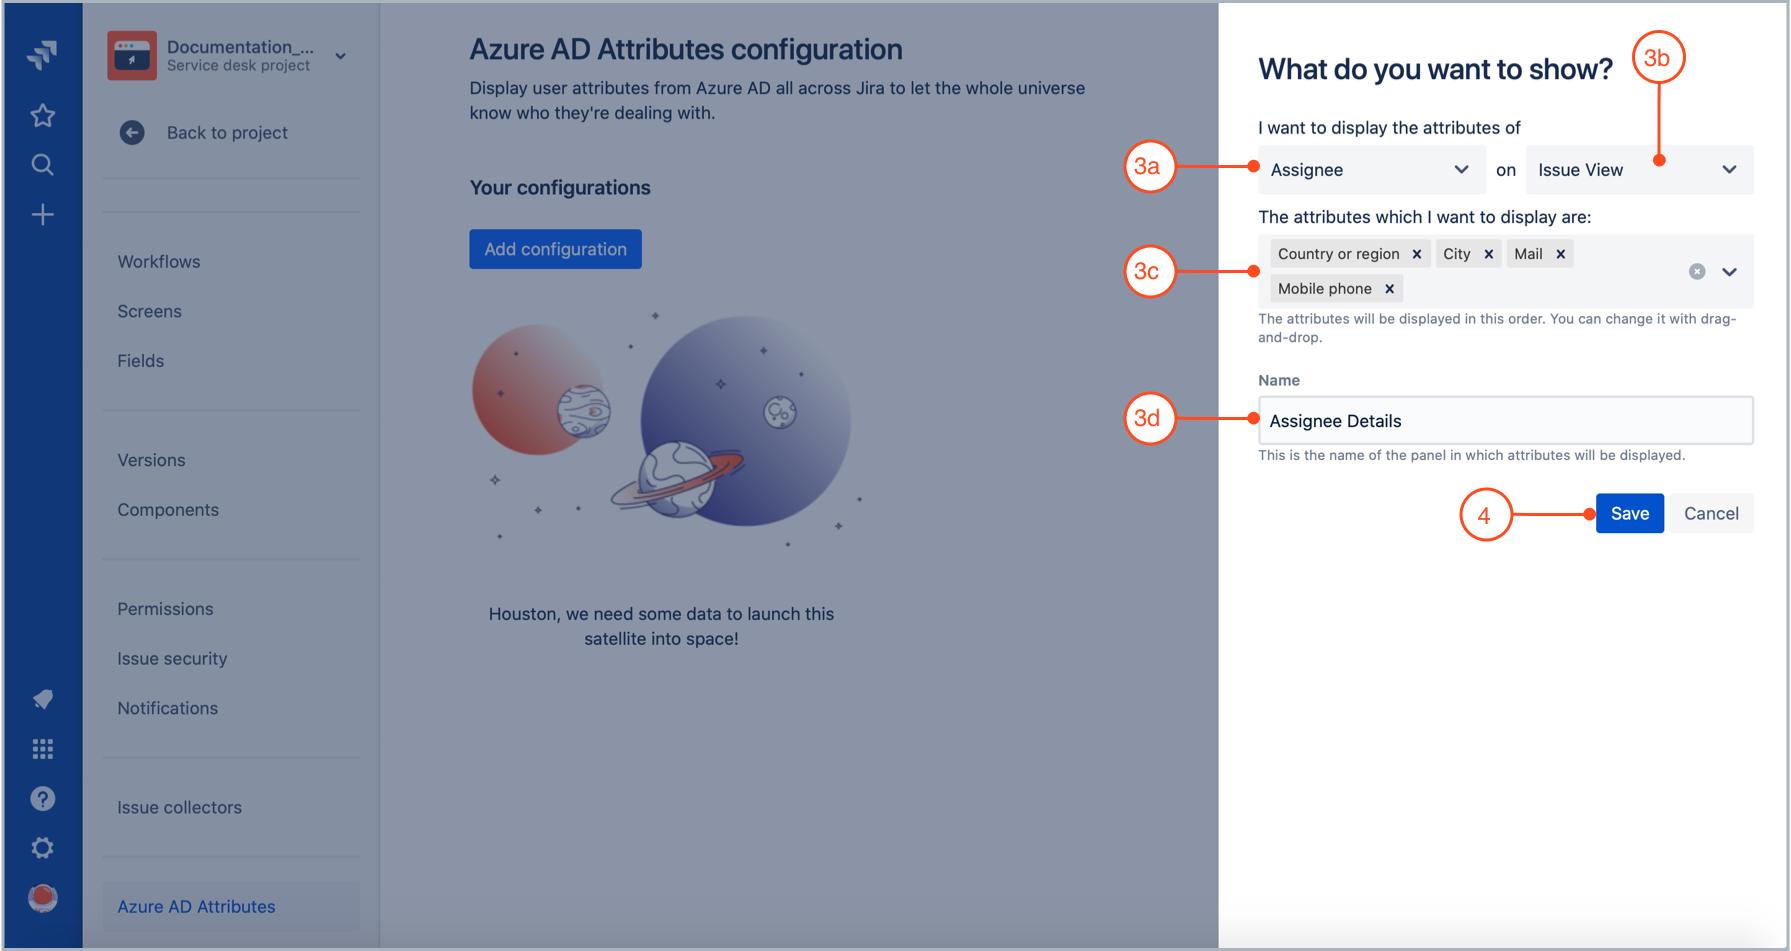 Defining a configuration of Azure AD attributes to be displayed in Jira